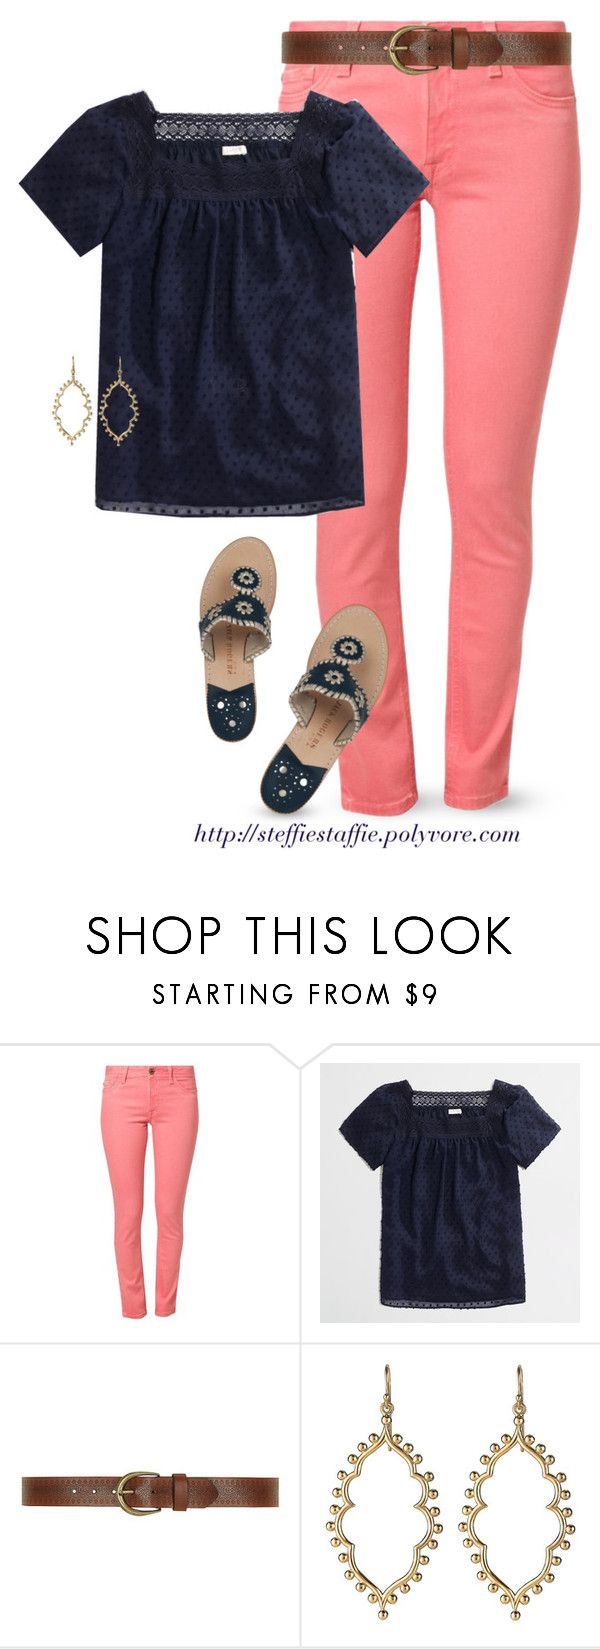 """""""Coral & Navy"""" by steffiestaffie ❤ liked on Polyvore featuring DL1961 Premium Denim, J.Crew, Dorothy Perkins, Jack Rogers and happybirthdaycathleen"""